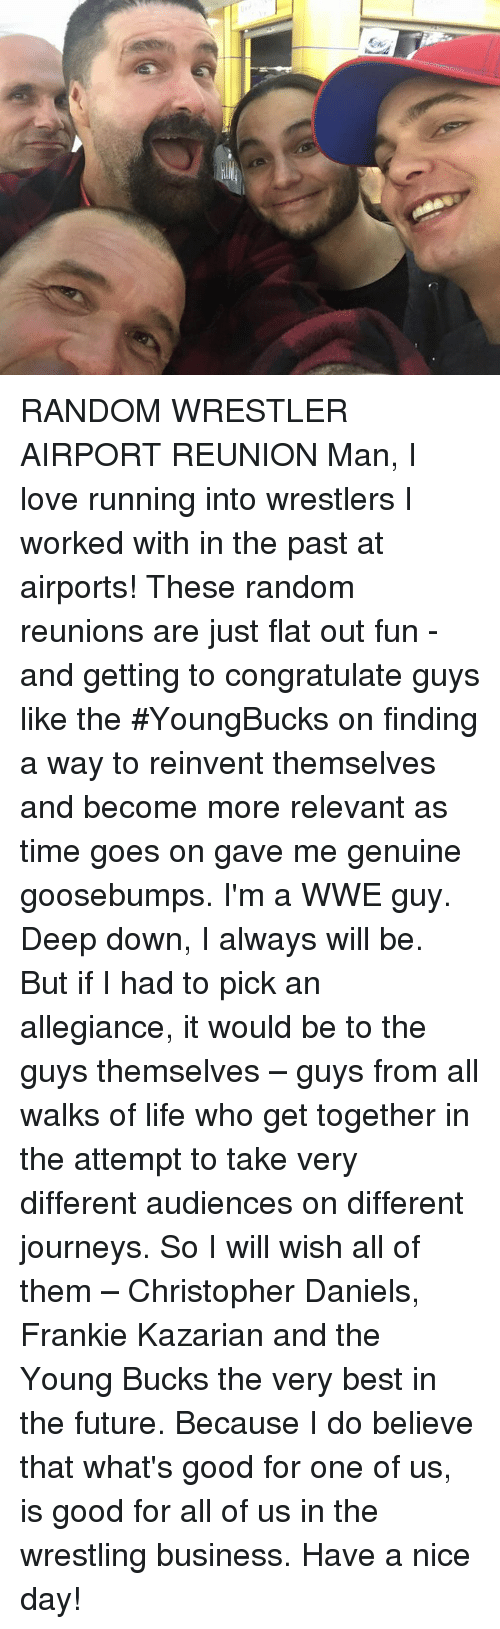 Journey, Memes, and Wrestling: RANDOM WRESTLER AIRPORT REUNION Man, I love running into wrestlers I worked with in the past at airports! These random reunions are just flat out fun - and getting to congratulate guys like the #YoungBucks on finding a way to reinvent themselves and become more relevant as time goes on gave me genuine goosebumps.   I'm a WWE guy. Deep down, I always will be. But if I had to pick an allegiance, it would be to the guys themselves – guys from all walks of life who get together in the attempt to take very different audiences on different journeys. So I will wish all of them – Christopher Daniels, Frankie Kazarian and the Young Bucks the very best in the future. Because I do believe that what's good for one of us, is good for all of us in the wrestling business. Have a nice day!